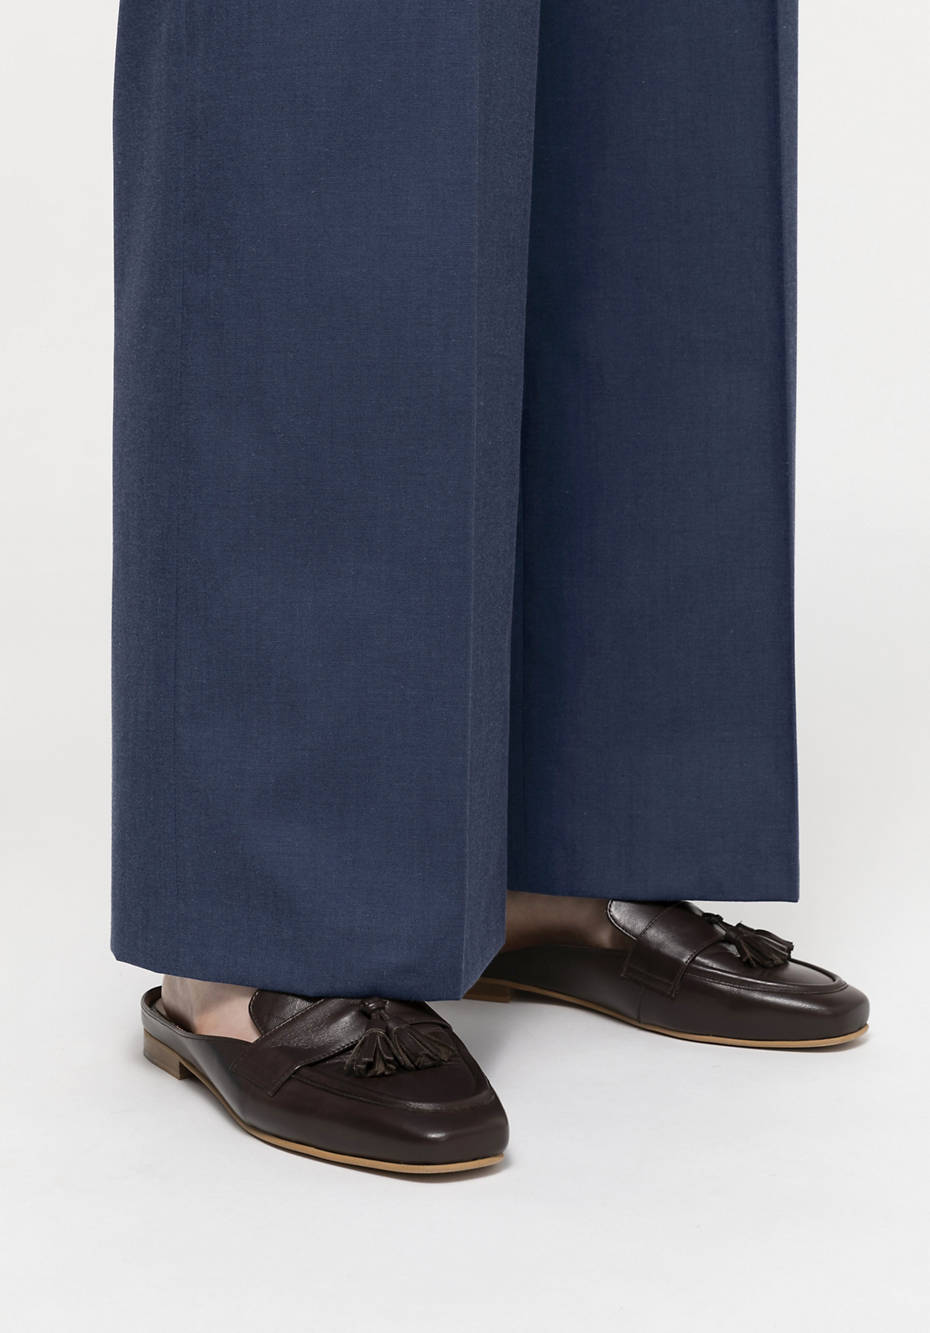 Cropped Flared trousers made of organic virgin wool with organic cotton